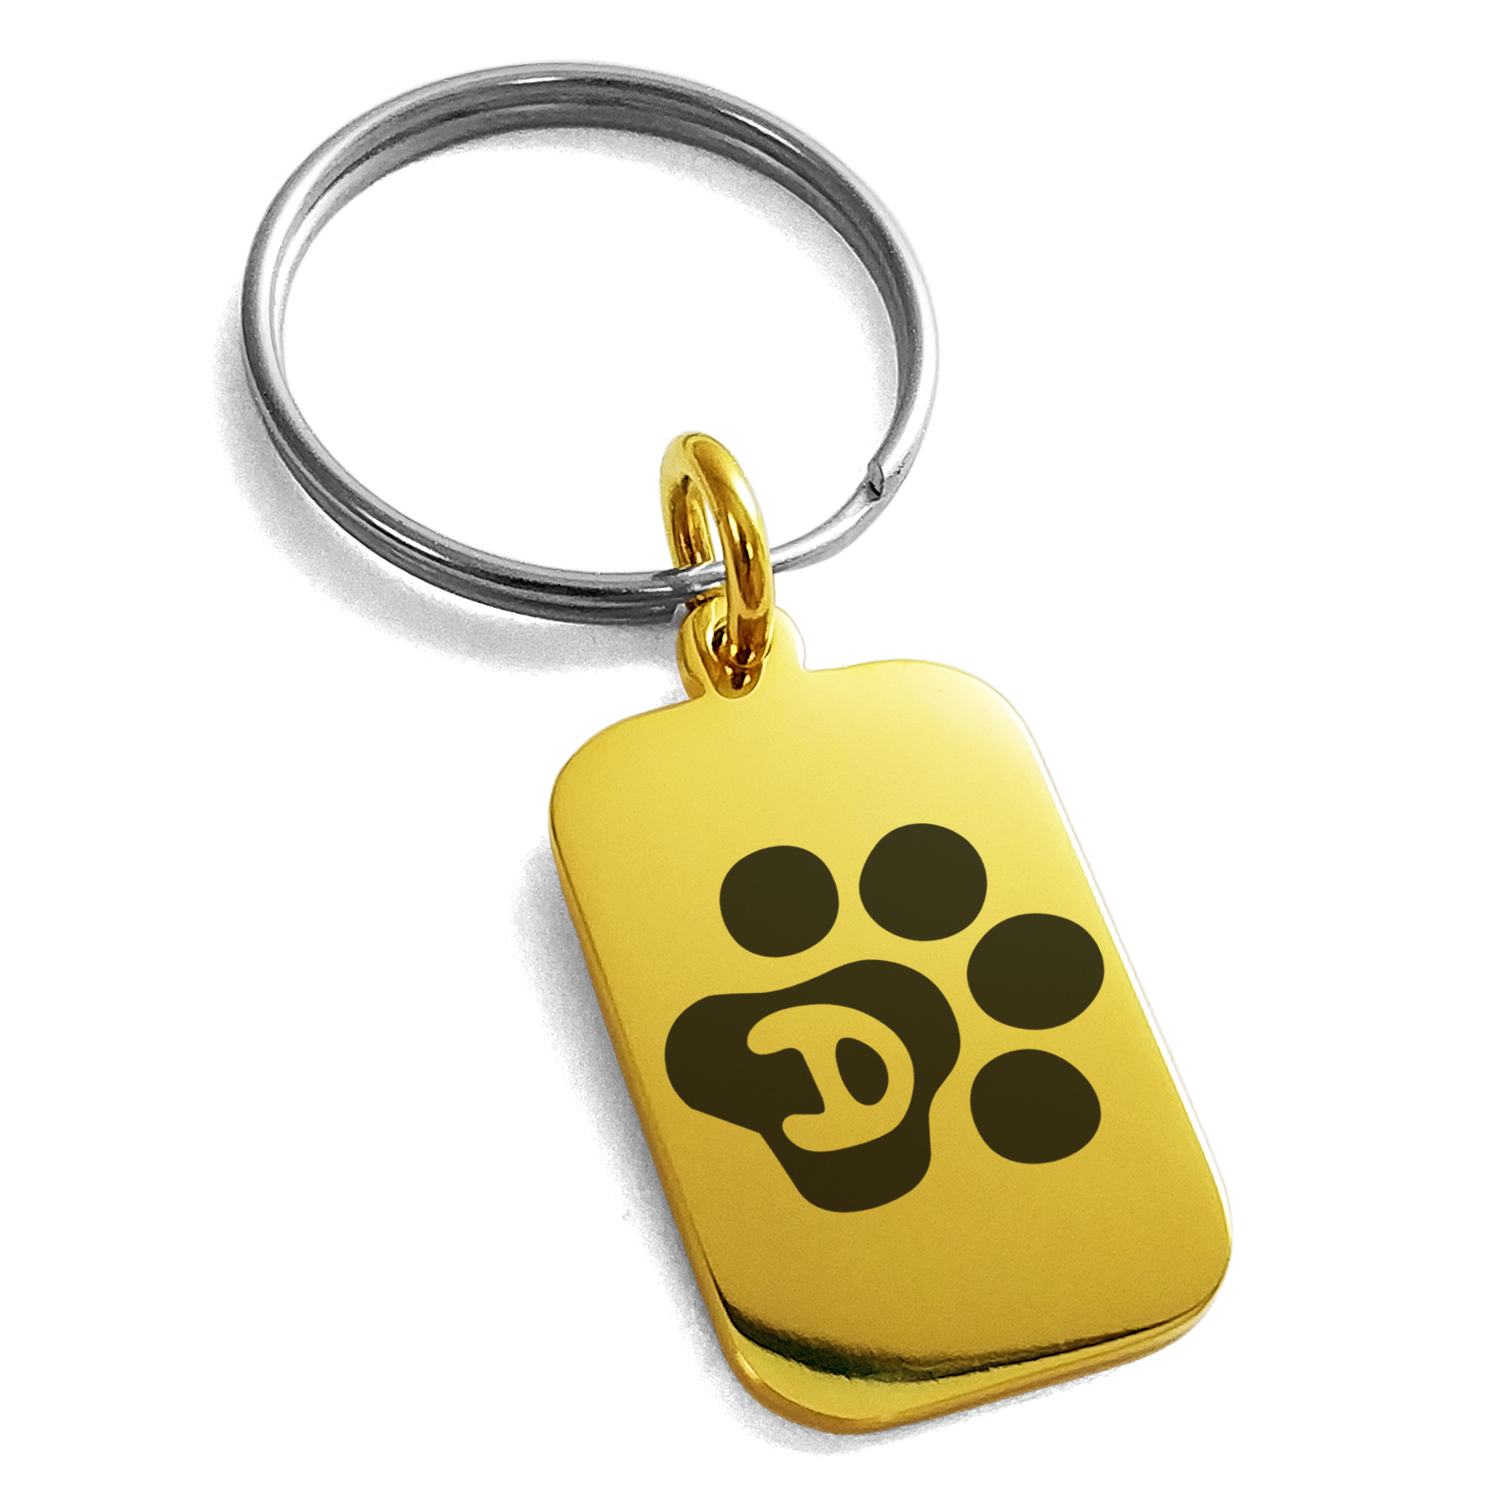 Stainless Steel Letter D Initial Cat Dog Paws Monogram Engraved Small Rectangle Dog Tag Charm Keychain Keyring